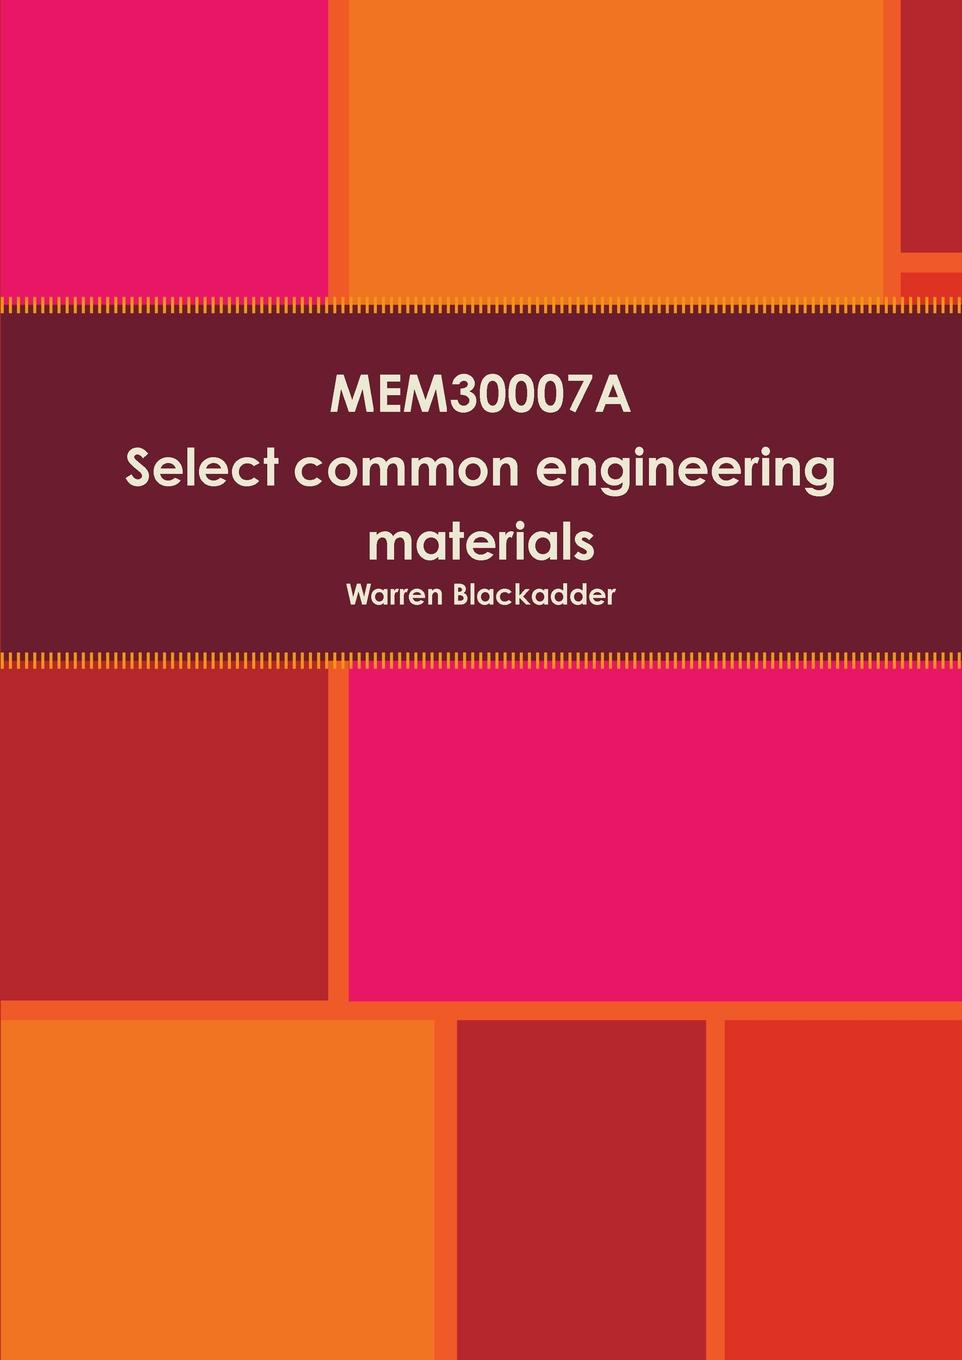 цена на Warren Blackadder MEM30007A Select common engineering materials